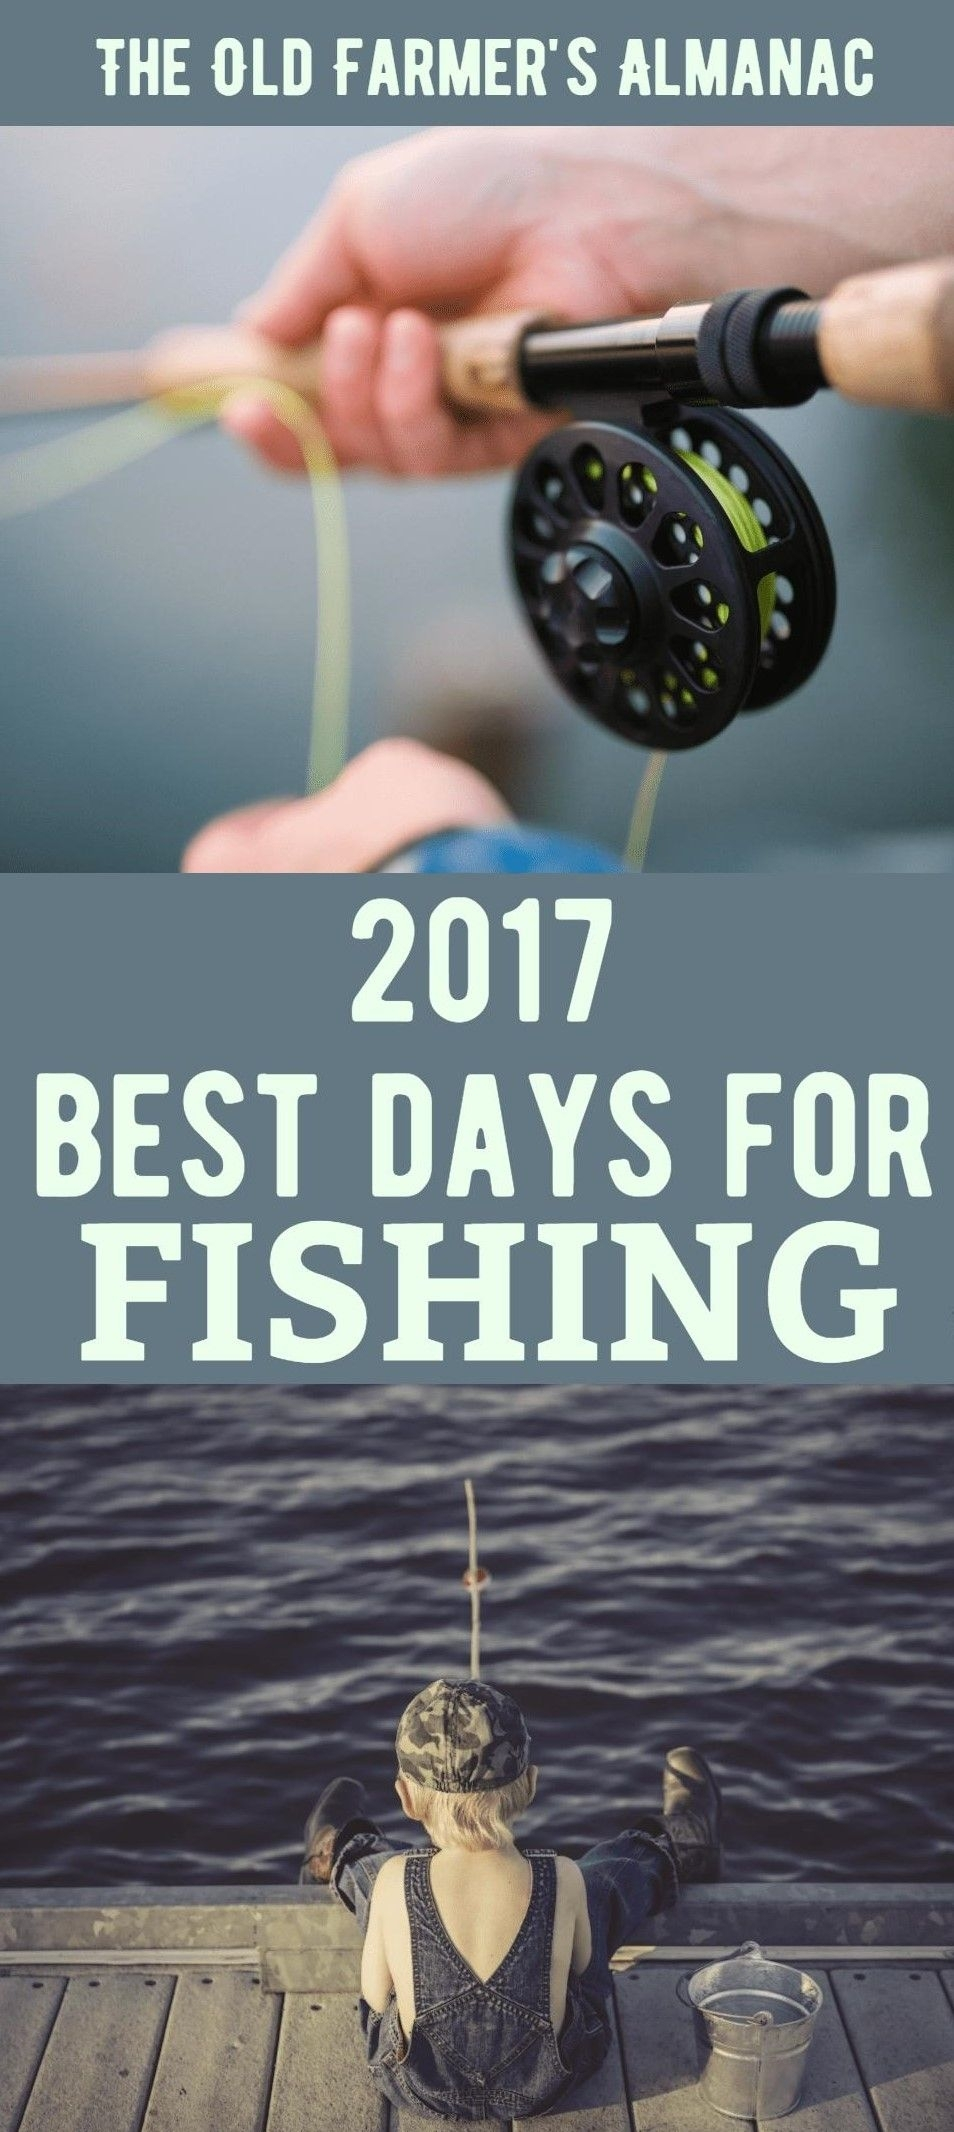 Fishing Calendar For 2020 (With Images) | Fishing Tips, Best